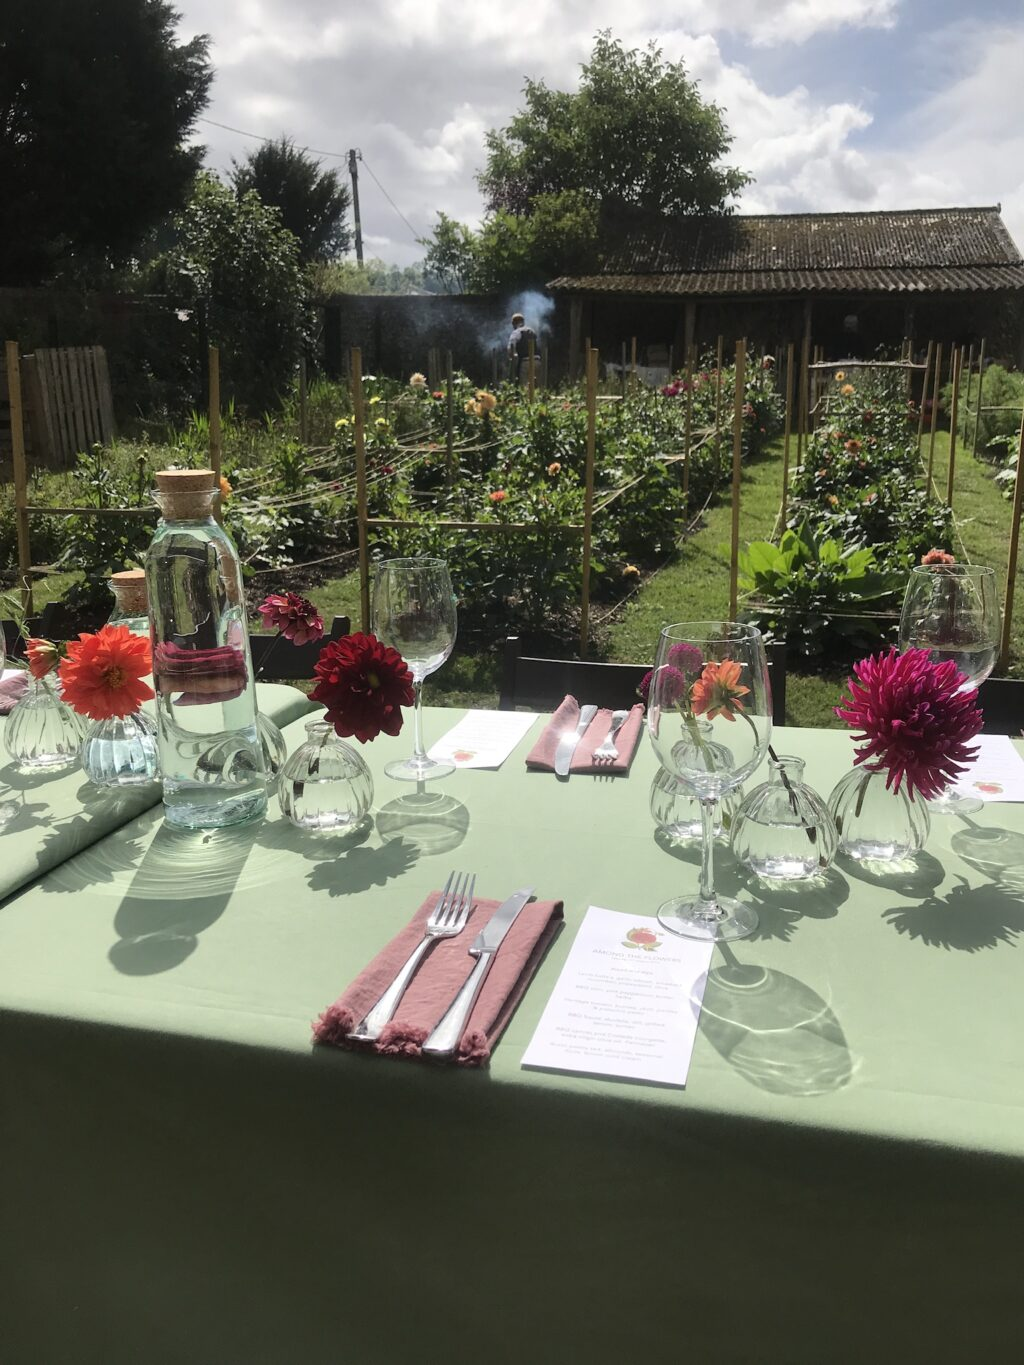 Tables prepared for guests at Annas Flower farm for a feast amongst the flowers